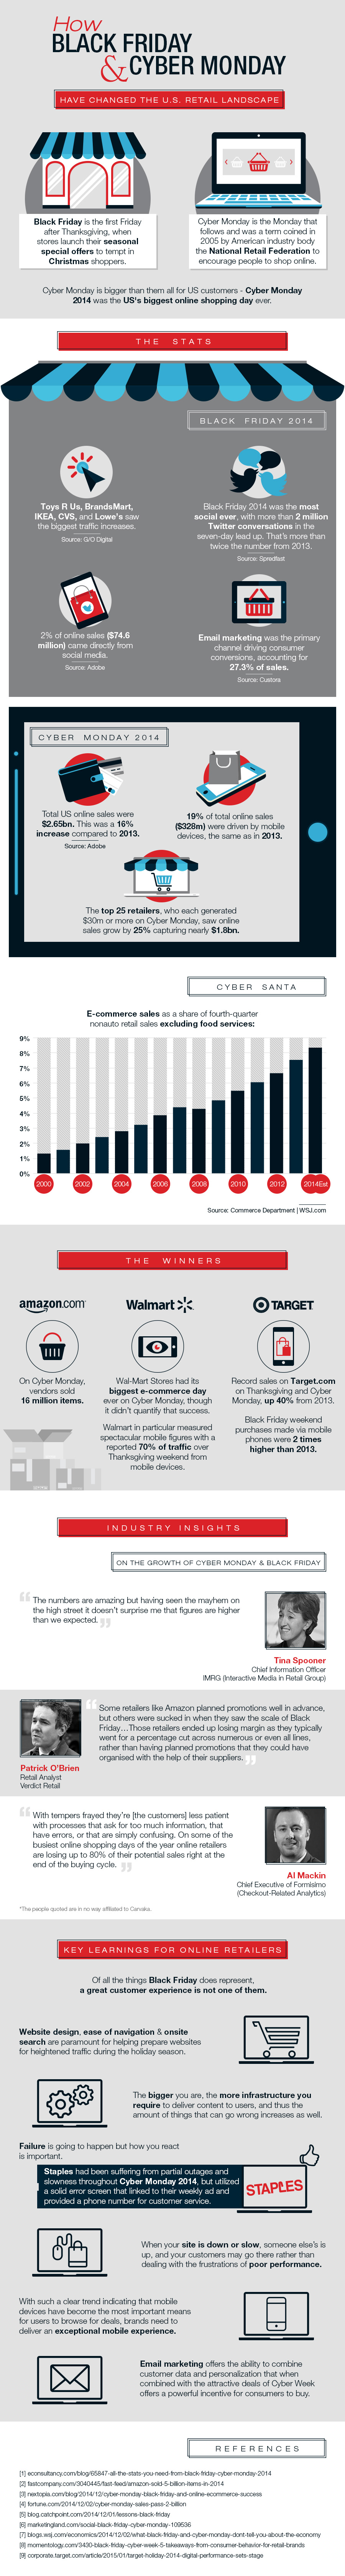 Black Friday & Cyber Monday Infographic - USA